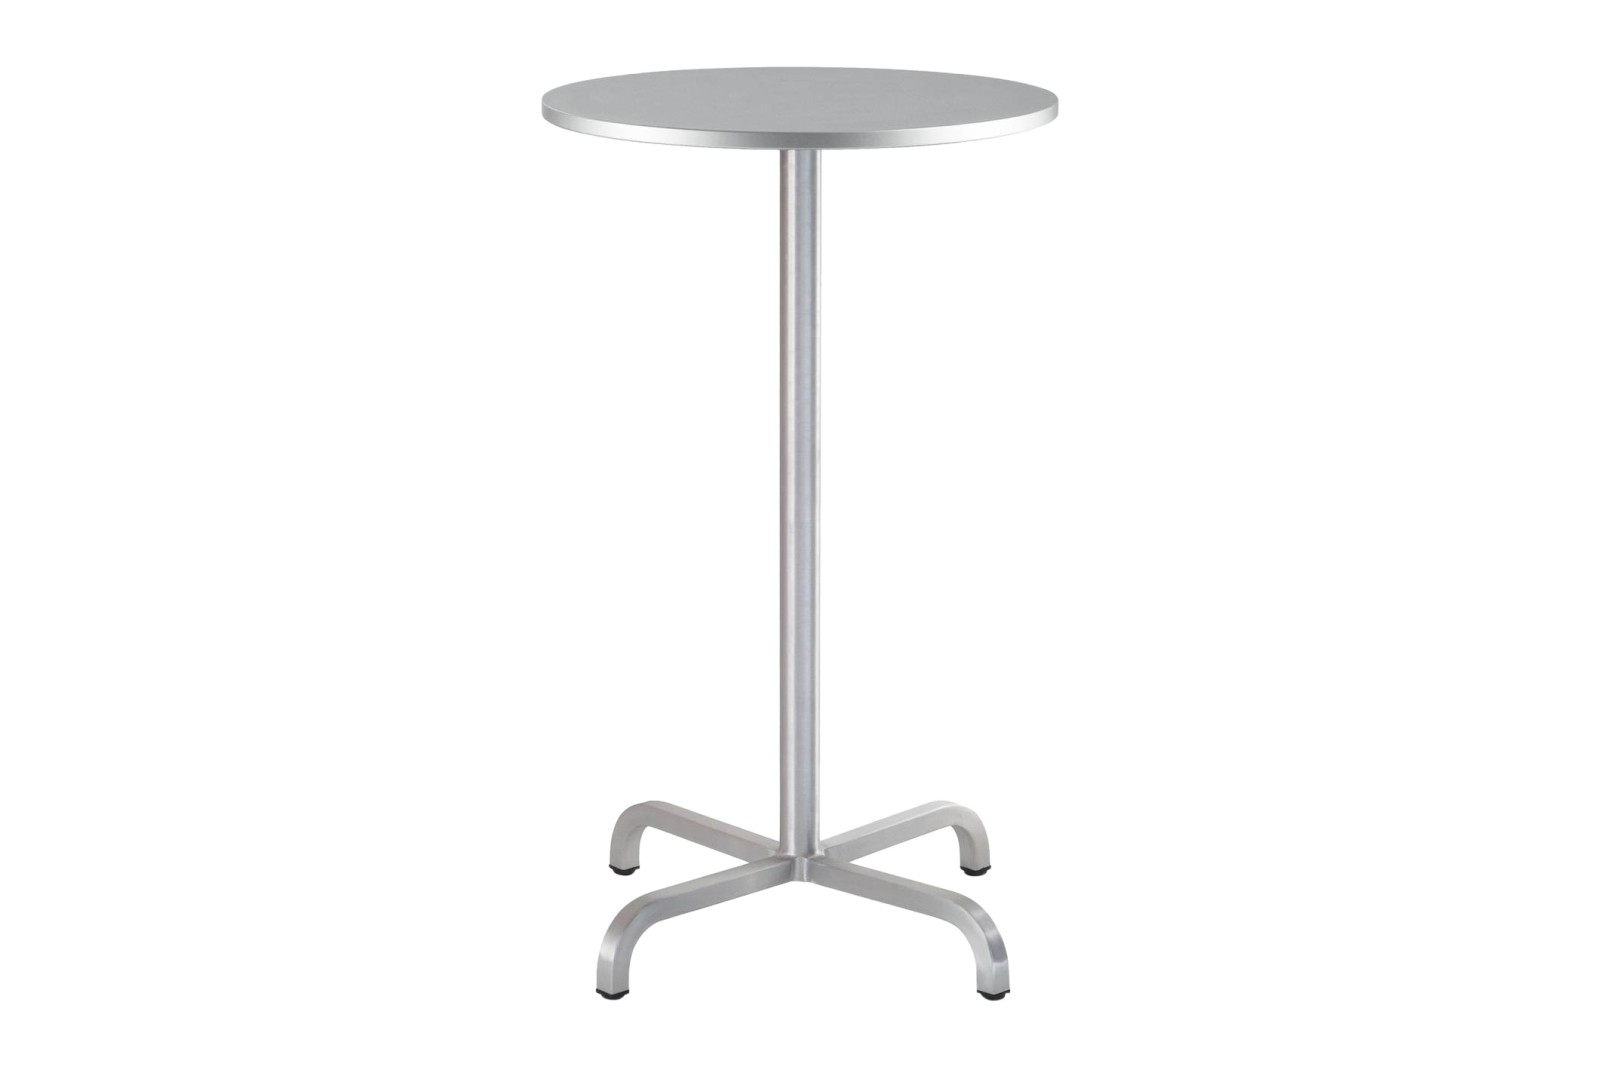 20-06 Round Bar-Height Table Grey Laminate Top, Matt Aluminium Edge, 106 x 60 x 60 cm